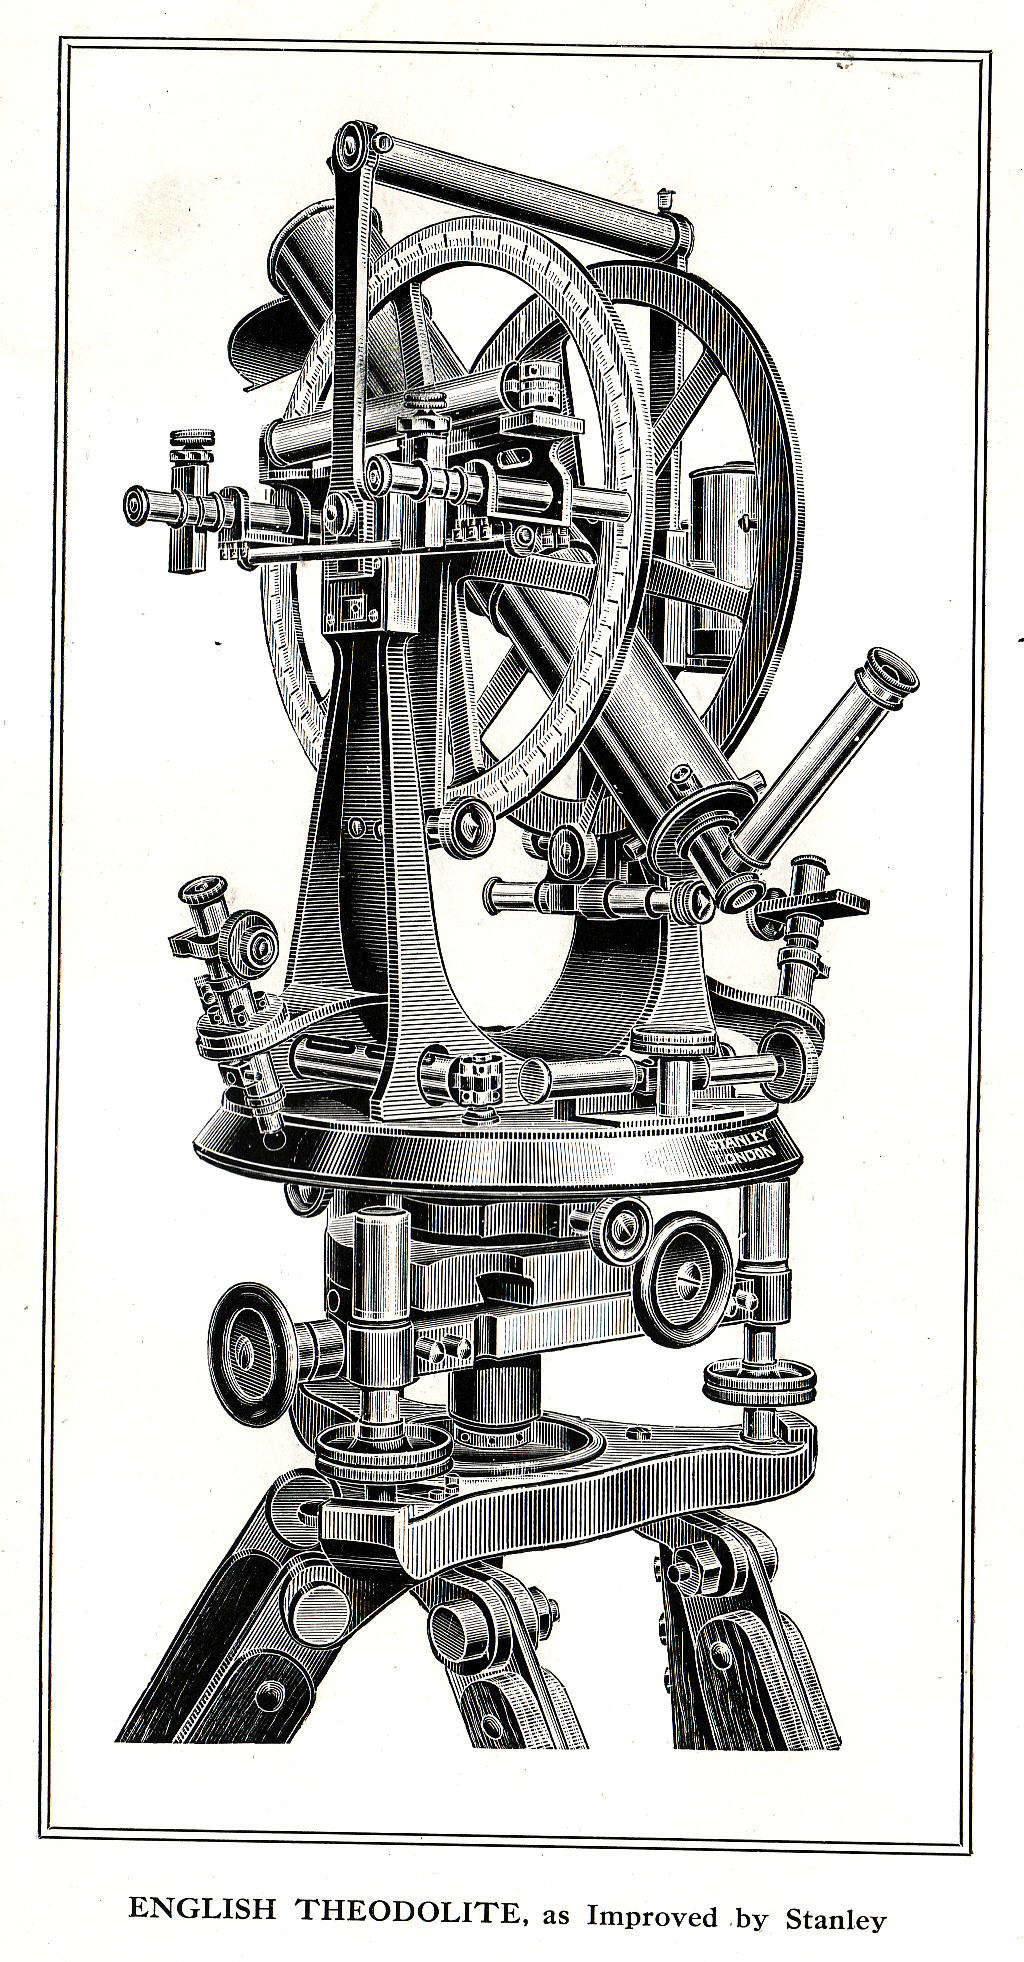 1000+ images about Theodolite on Pinterest